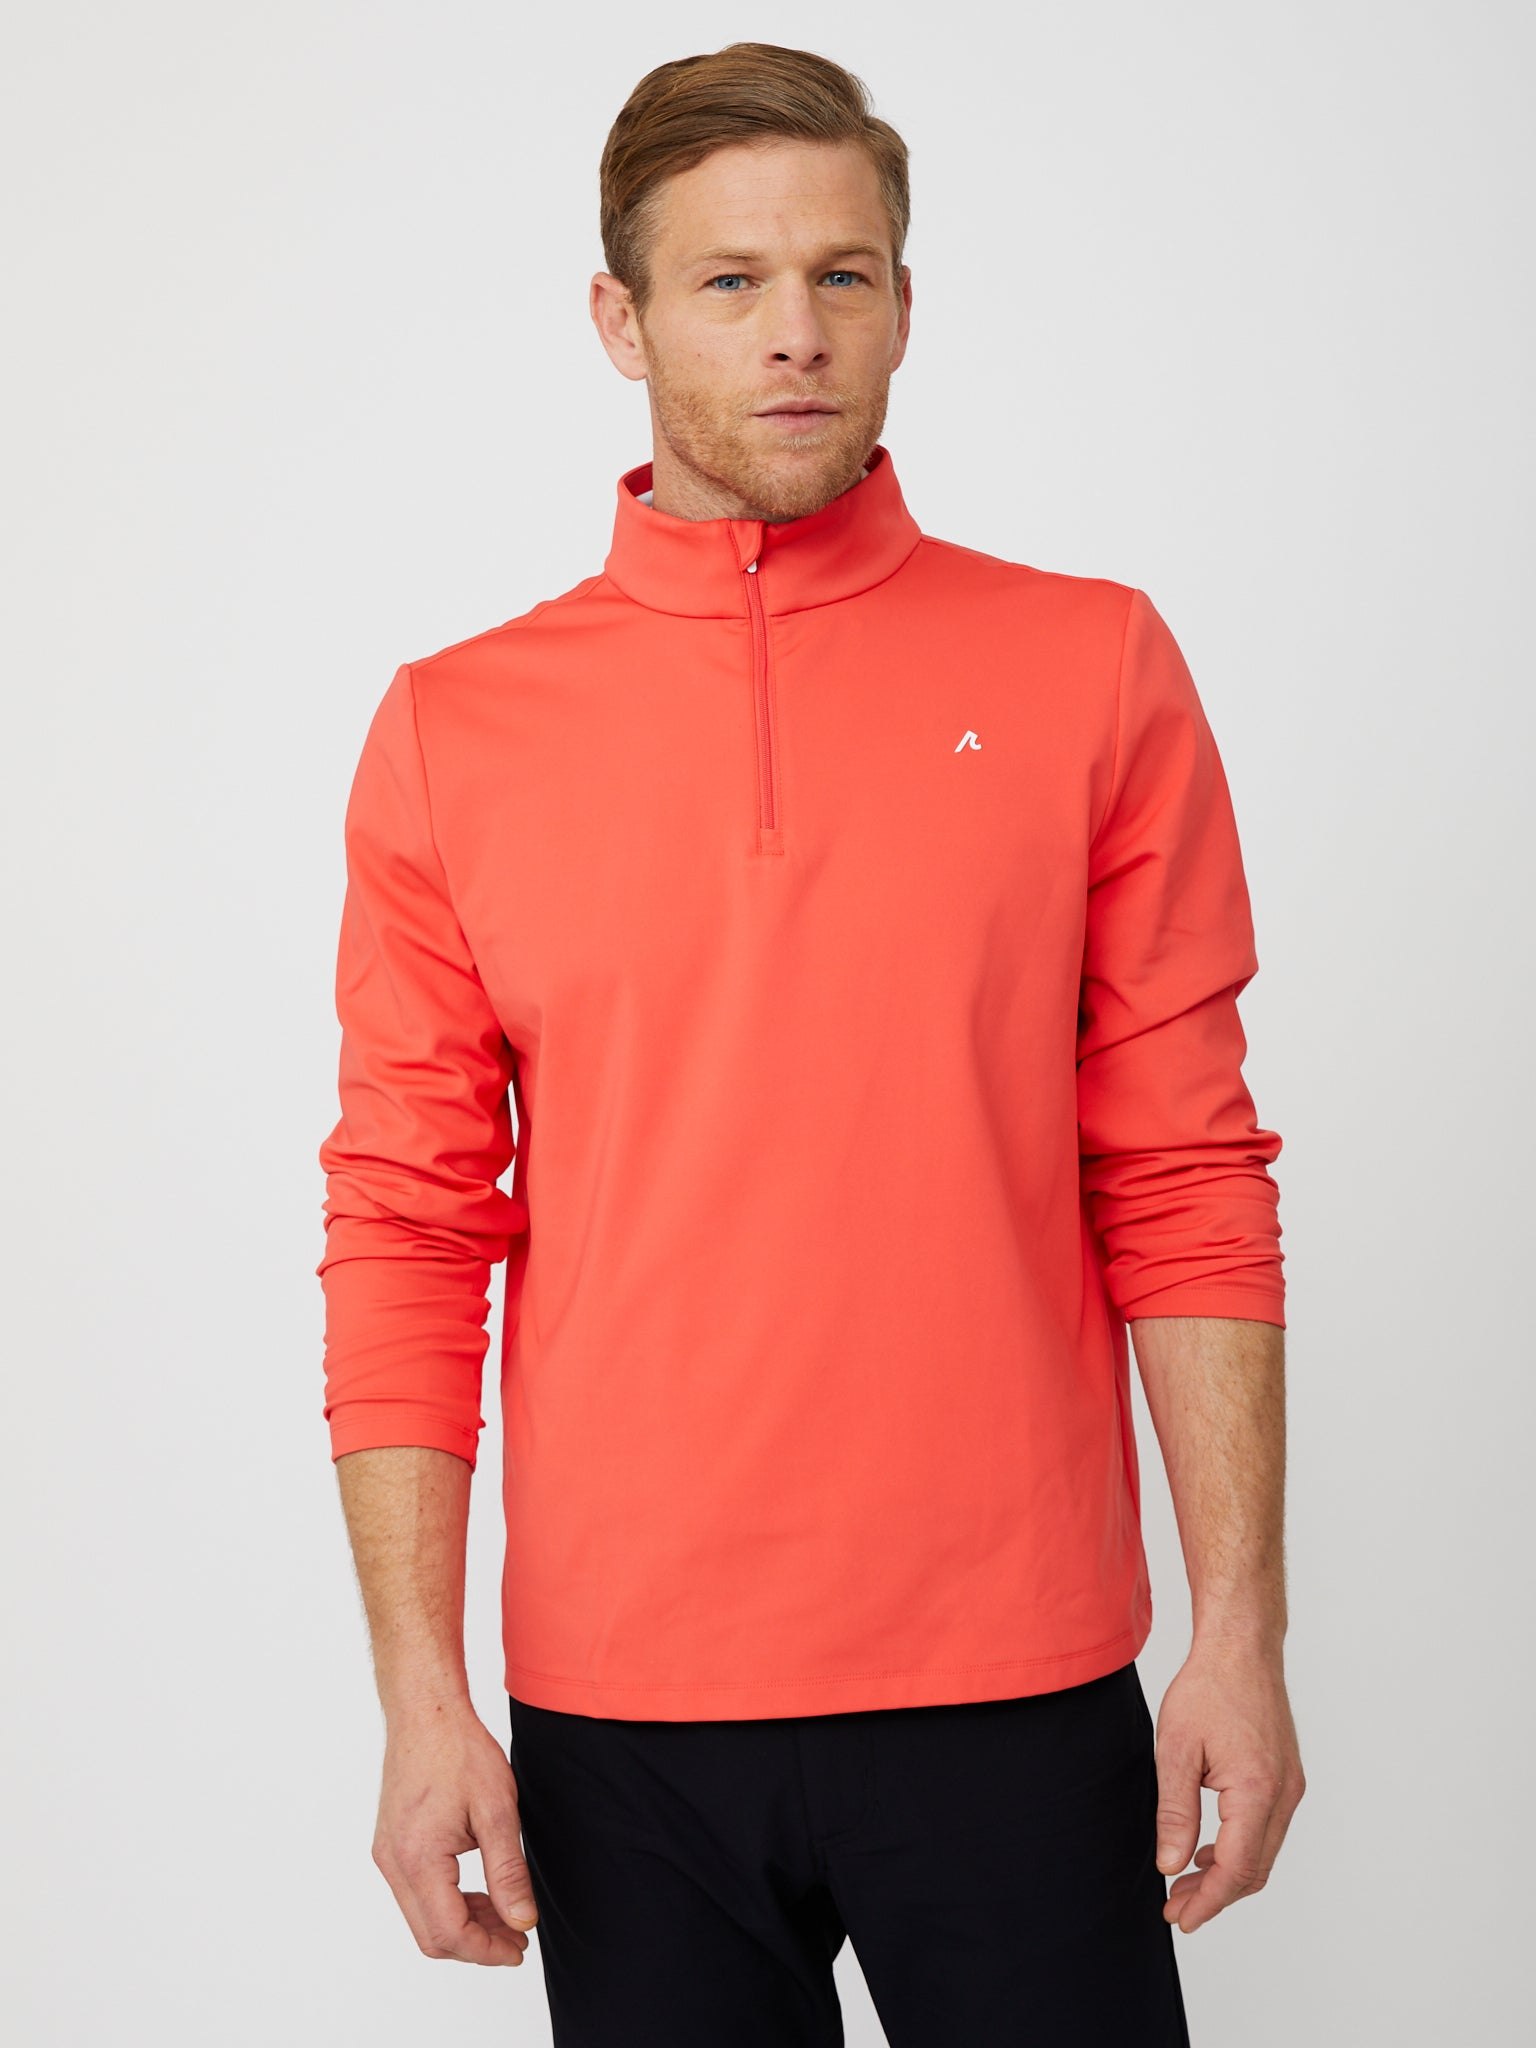 Costa Quarter Zip in Cayenne